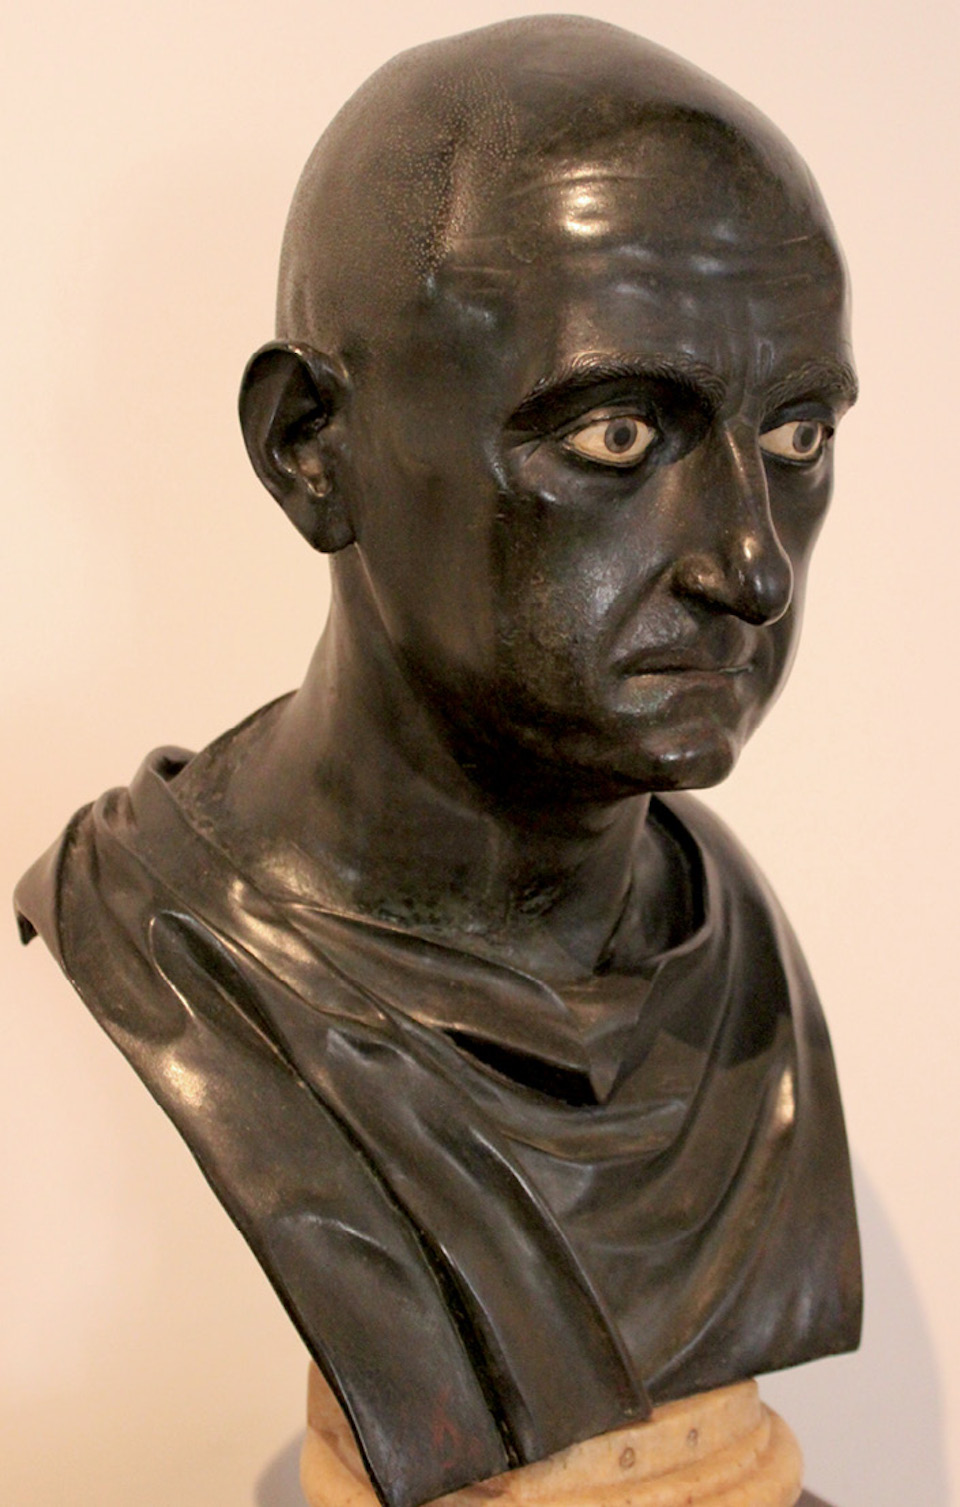 Bronze bust of Scipio Africanus in Naples National Archaeological Museum, dated mid-1st century BCE, from Villa of Papyri in Herculaneum, modern Ercolano, Italy (Courtesy Miguel Hermoso Cuesta)